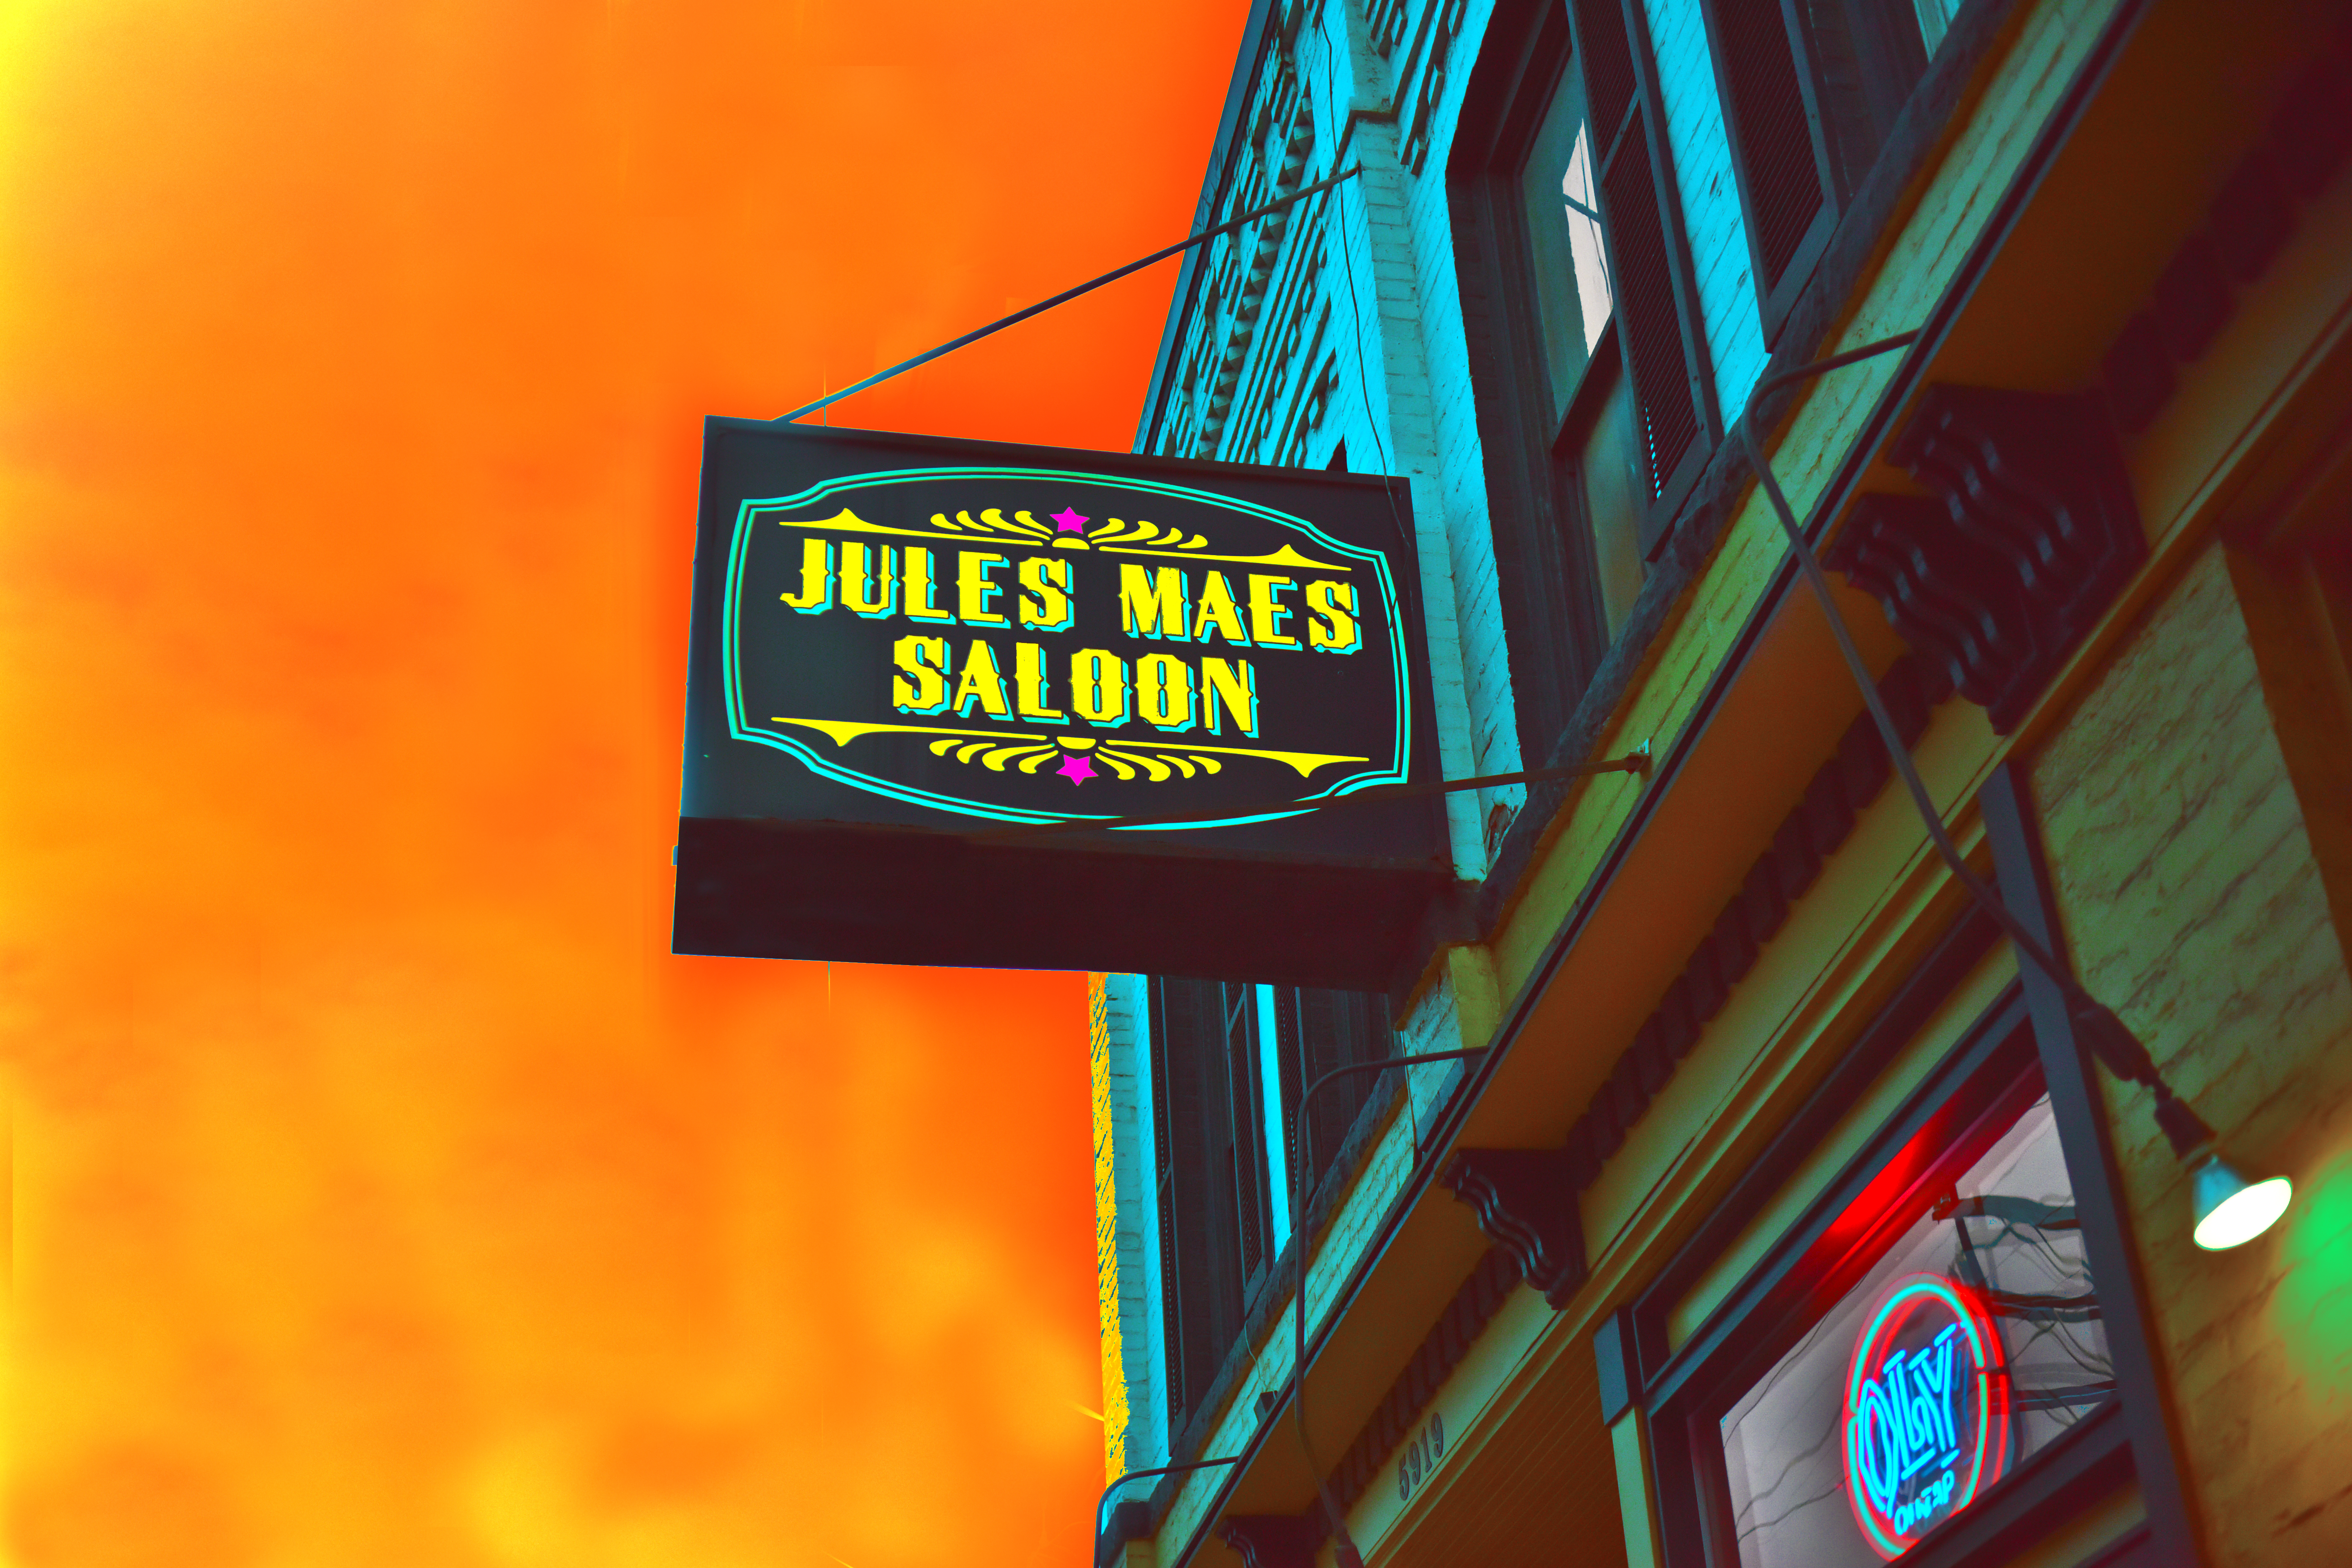 Jules Maes Saloon